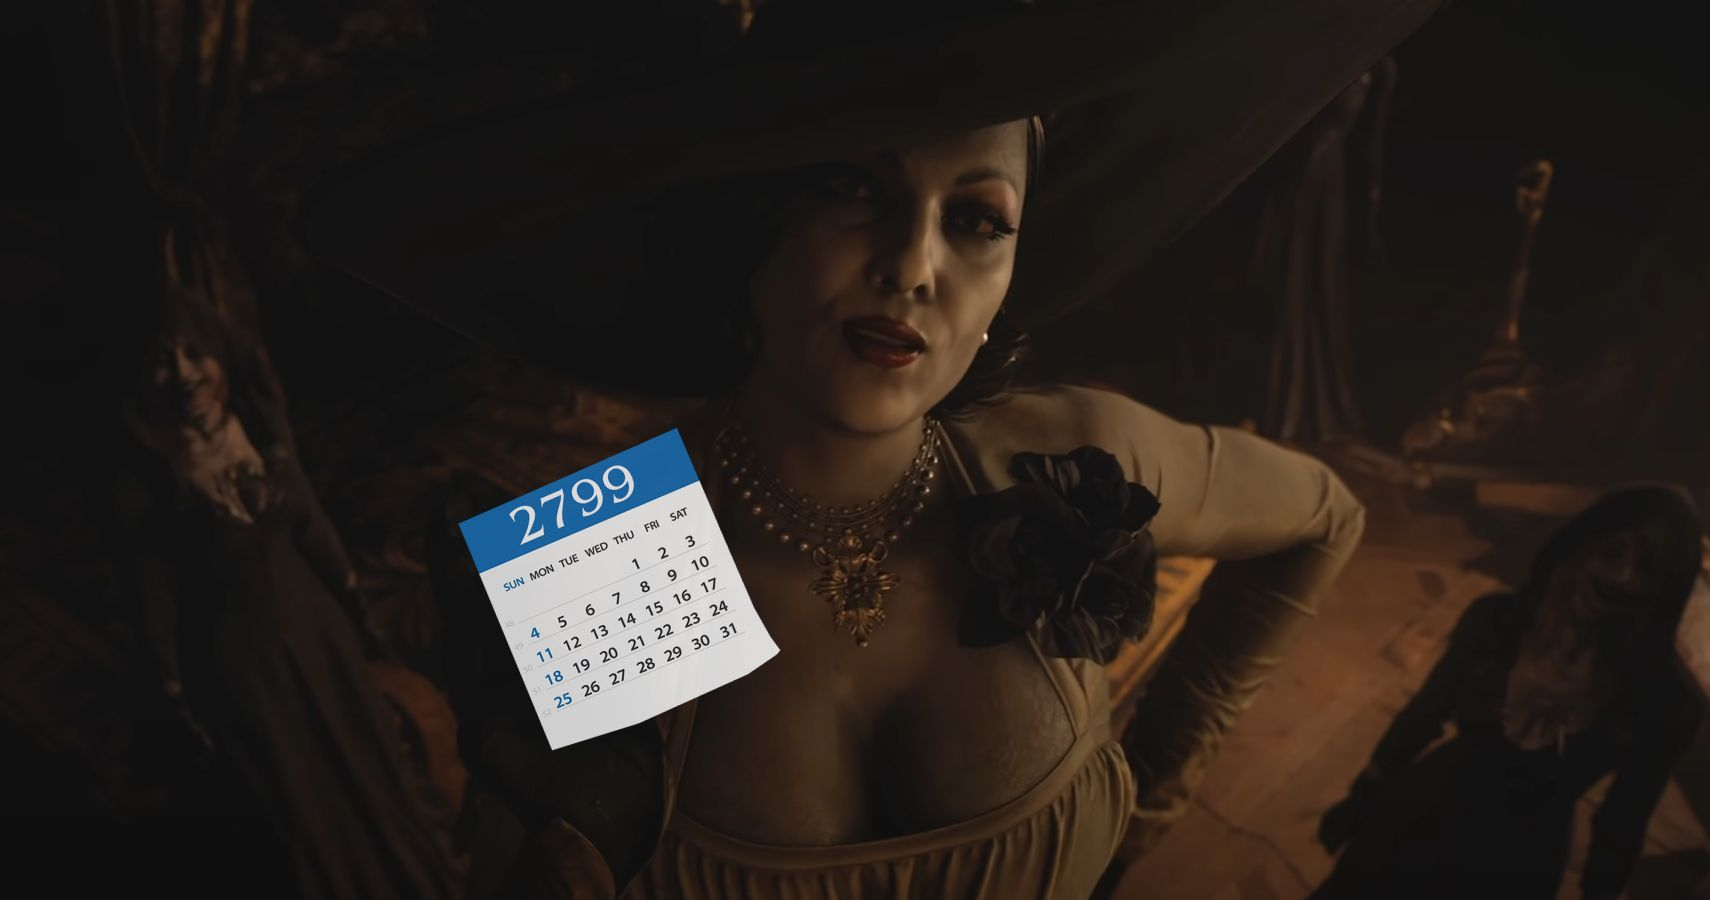 Make Sure You Redeem Your Resident Evil Re:verse Codes Before December 31, 2799